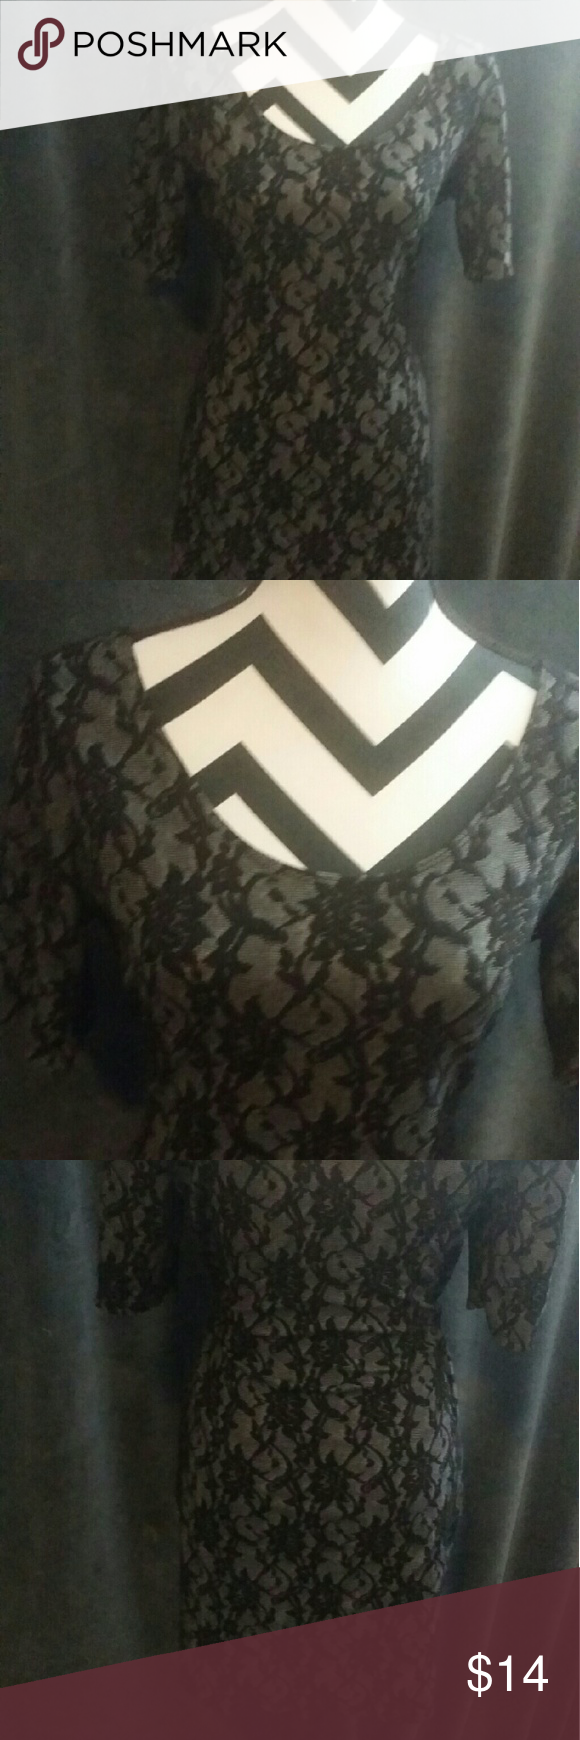 NWOT Juniors size XL Little black dress This dress is black and gray and is adorned with a flower design throughout. Dress can be worn on the shoulders or off the shoulders for the look you want. Dress creates an hourglass look. Perfect for a night out! Xhilaration Dresses Midi